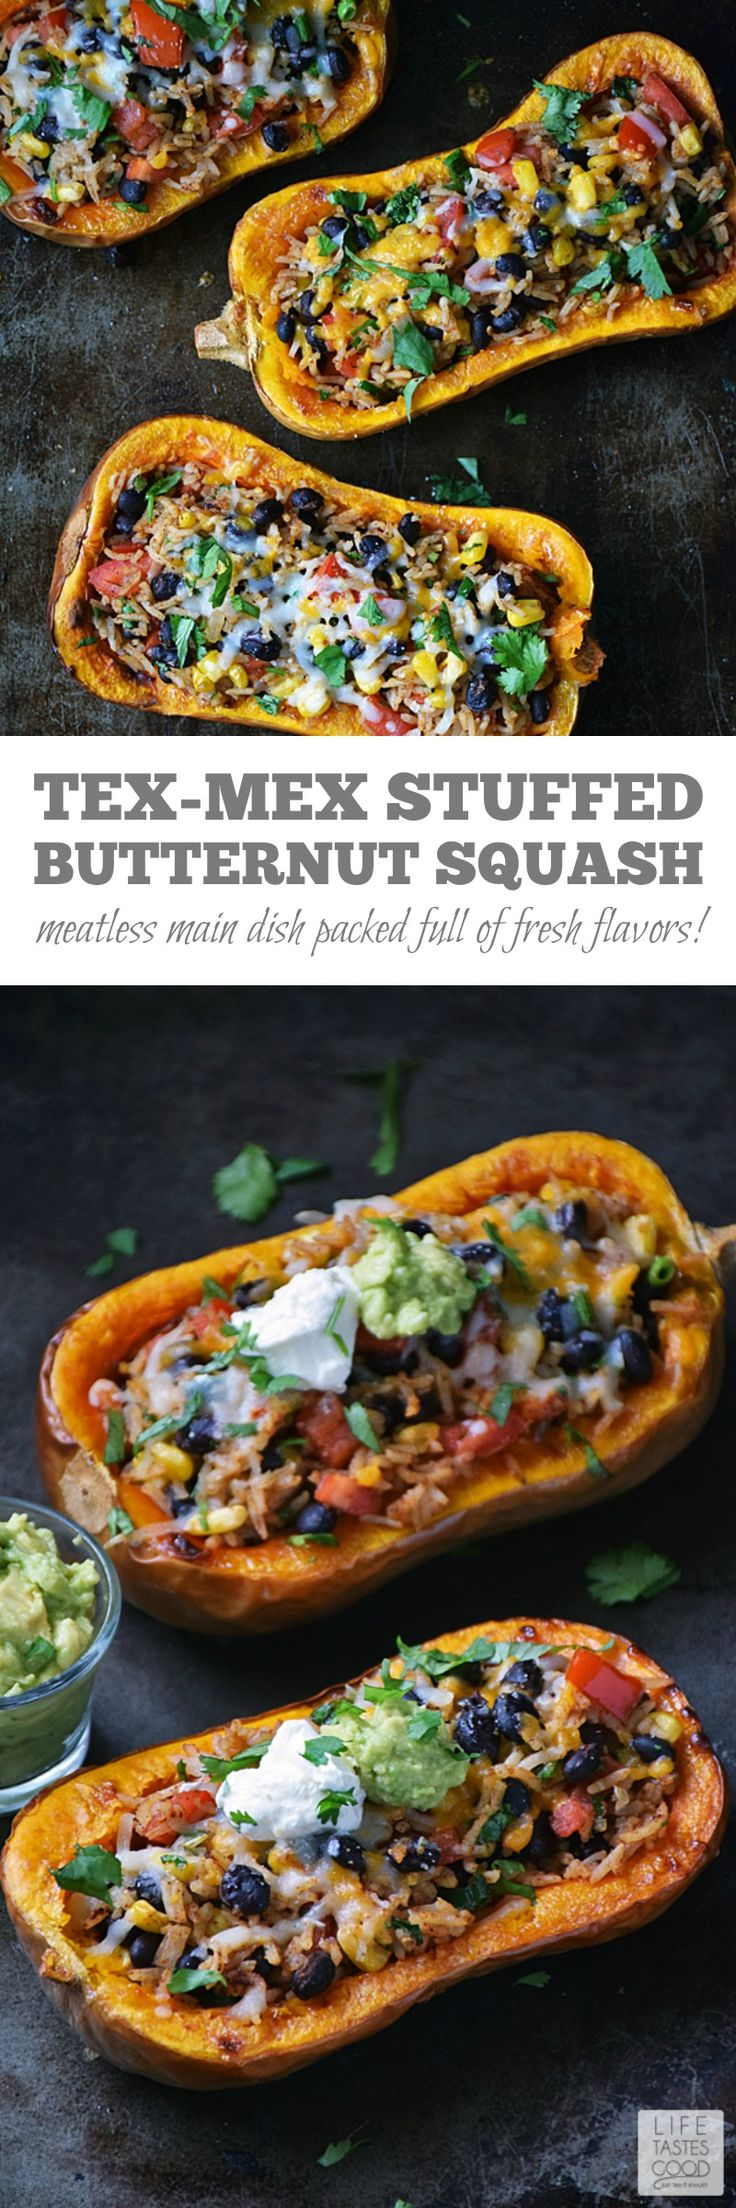 Stuffed Butternut Squash | by Life Tastes Good is a meatless meal packed full of fresh flavors inspired by Mexican cuisine. This recipe comes in a handy bowl you can eat too!